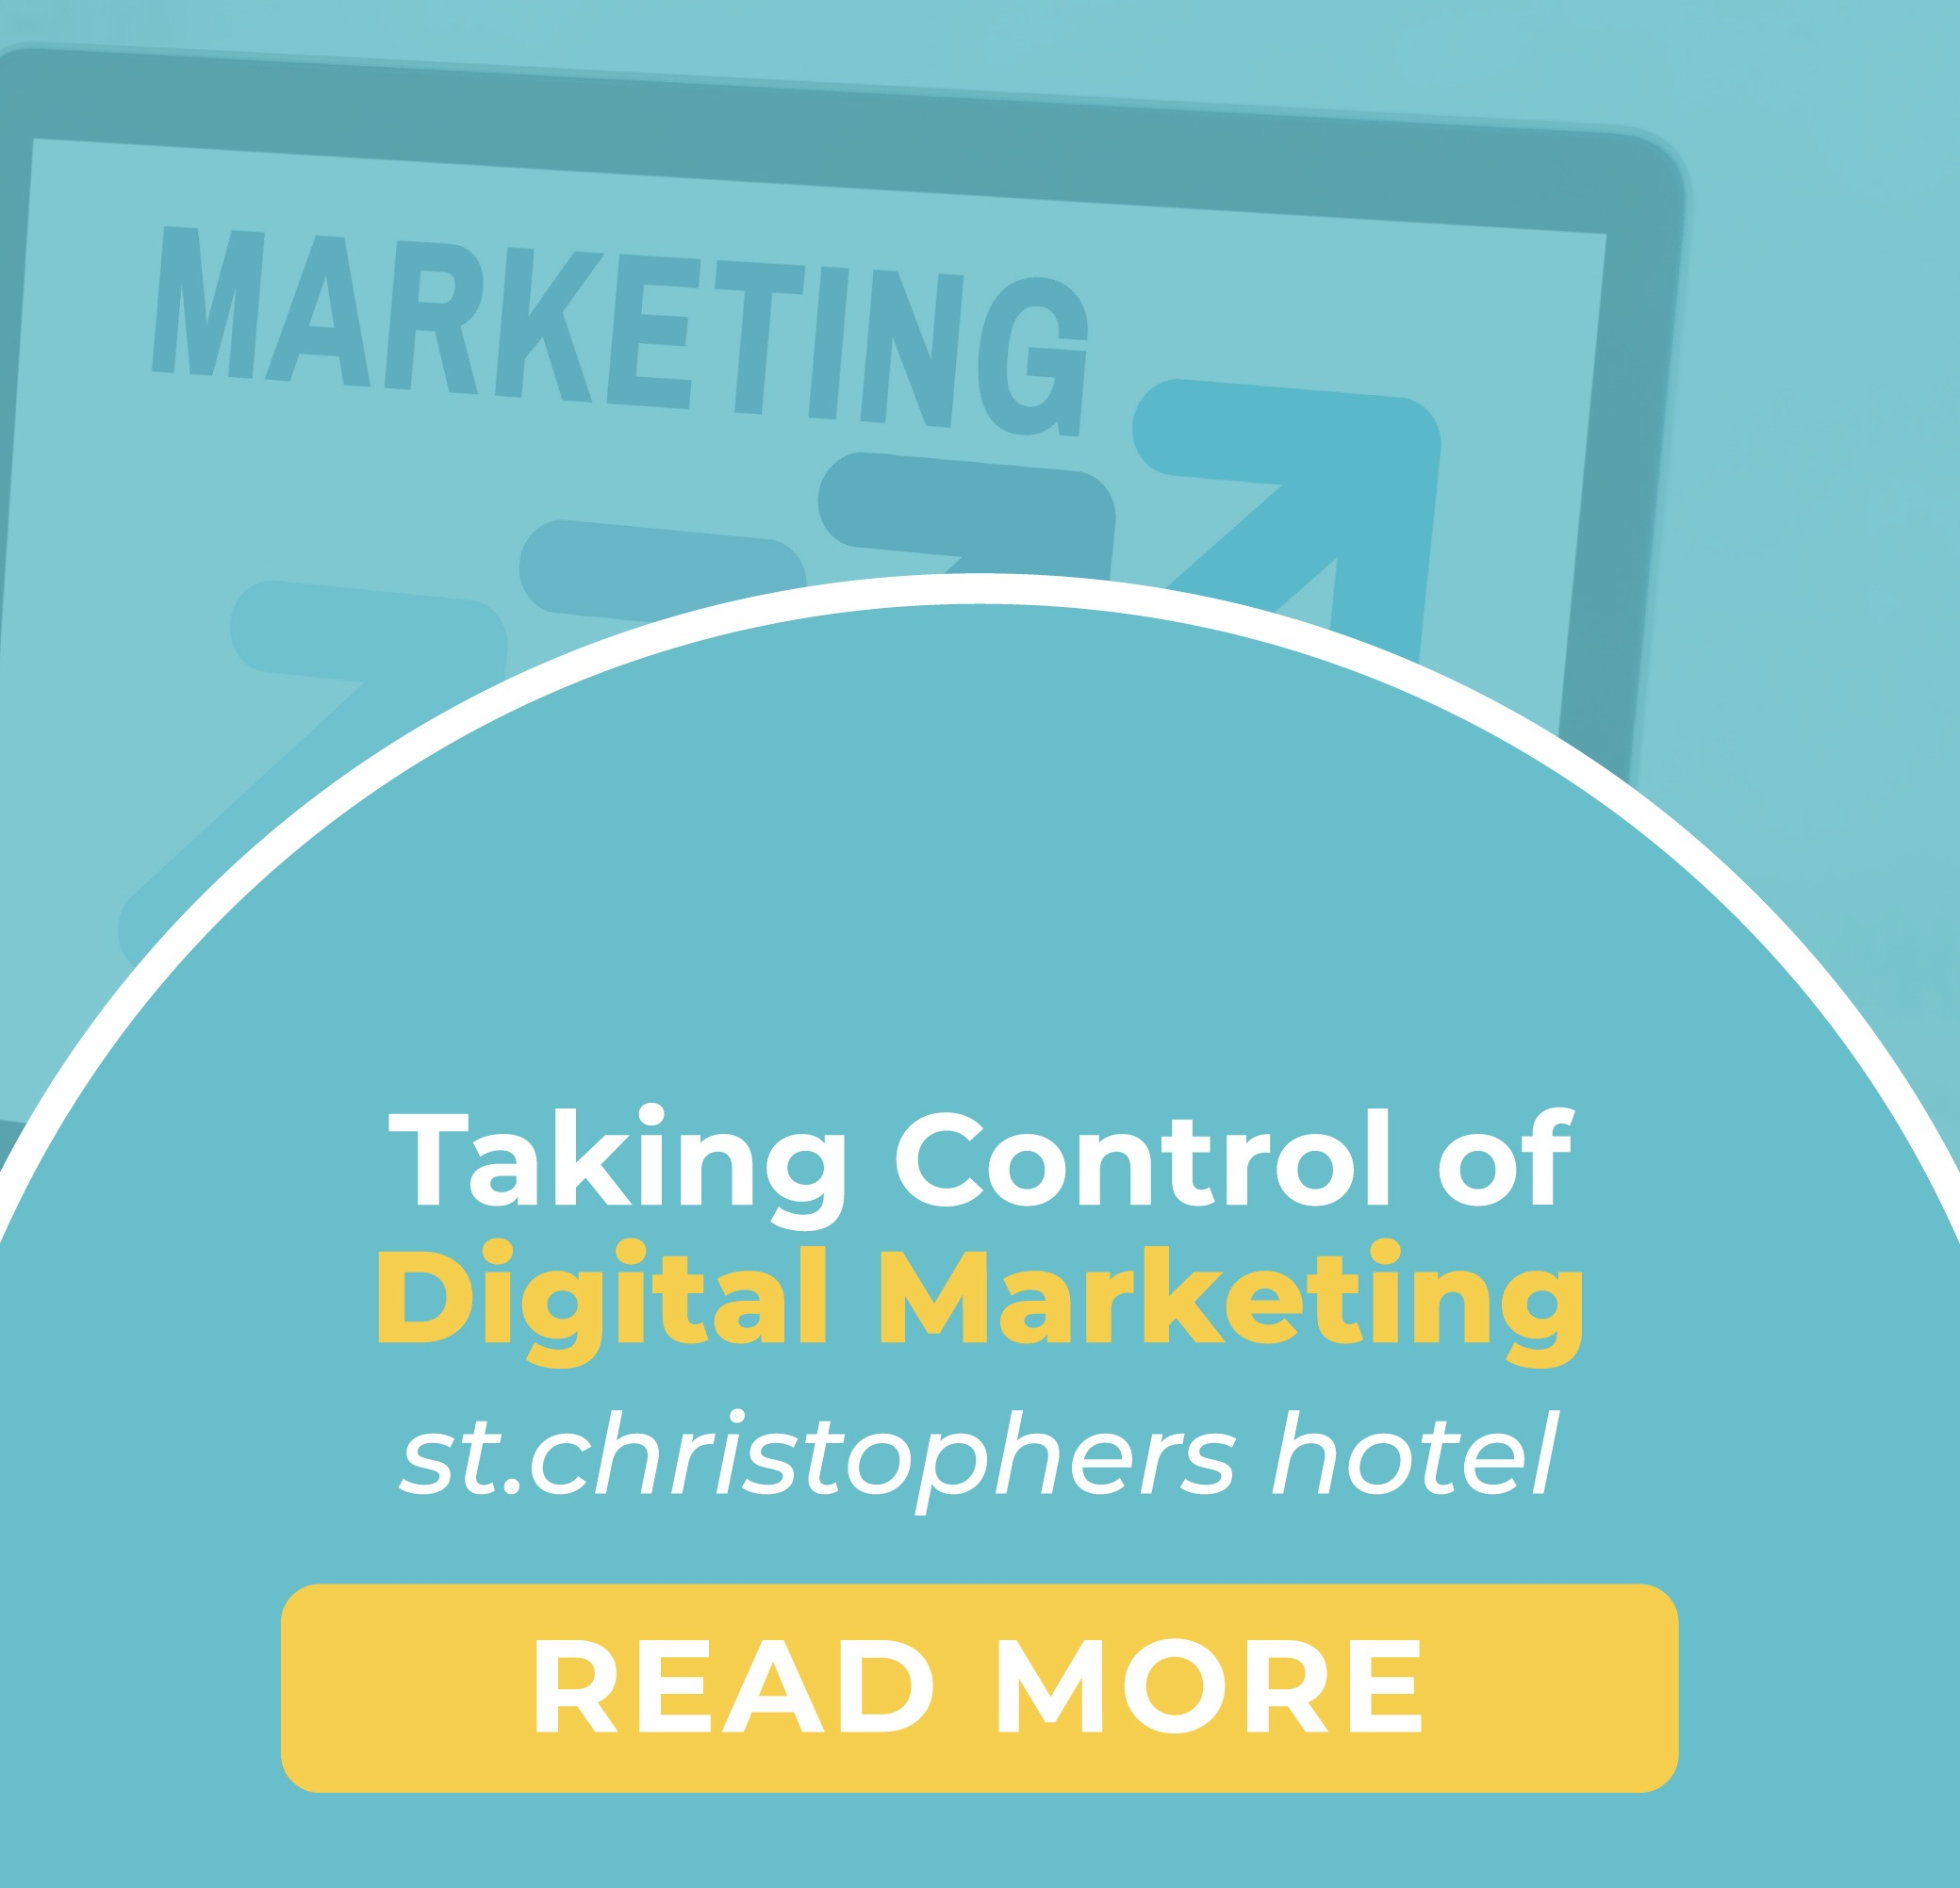 st.christophers hotel case study